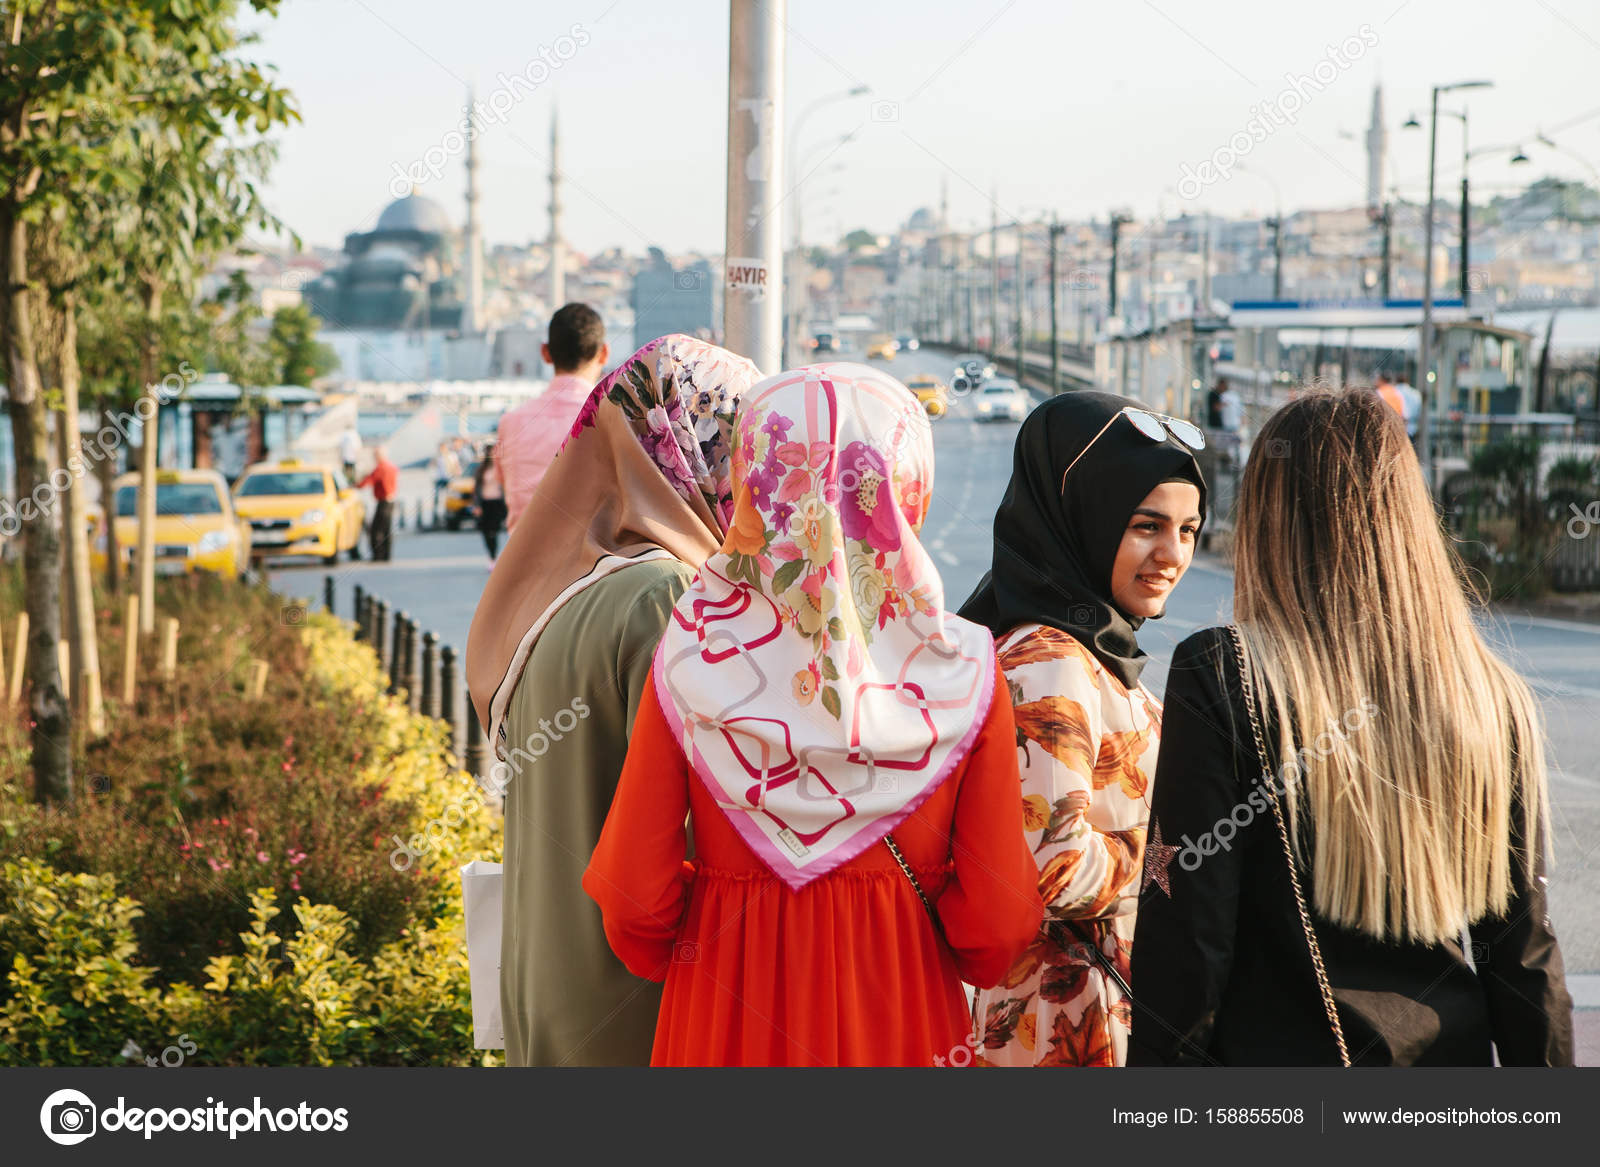 Istanbul, June 15, 2017: Islamic women in traditional attire communicate with each other